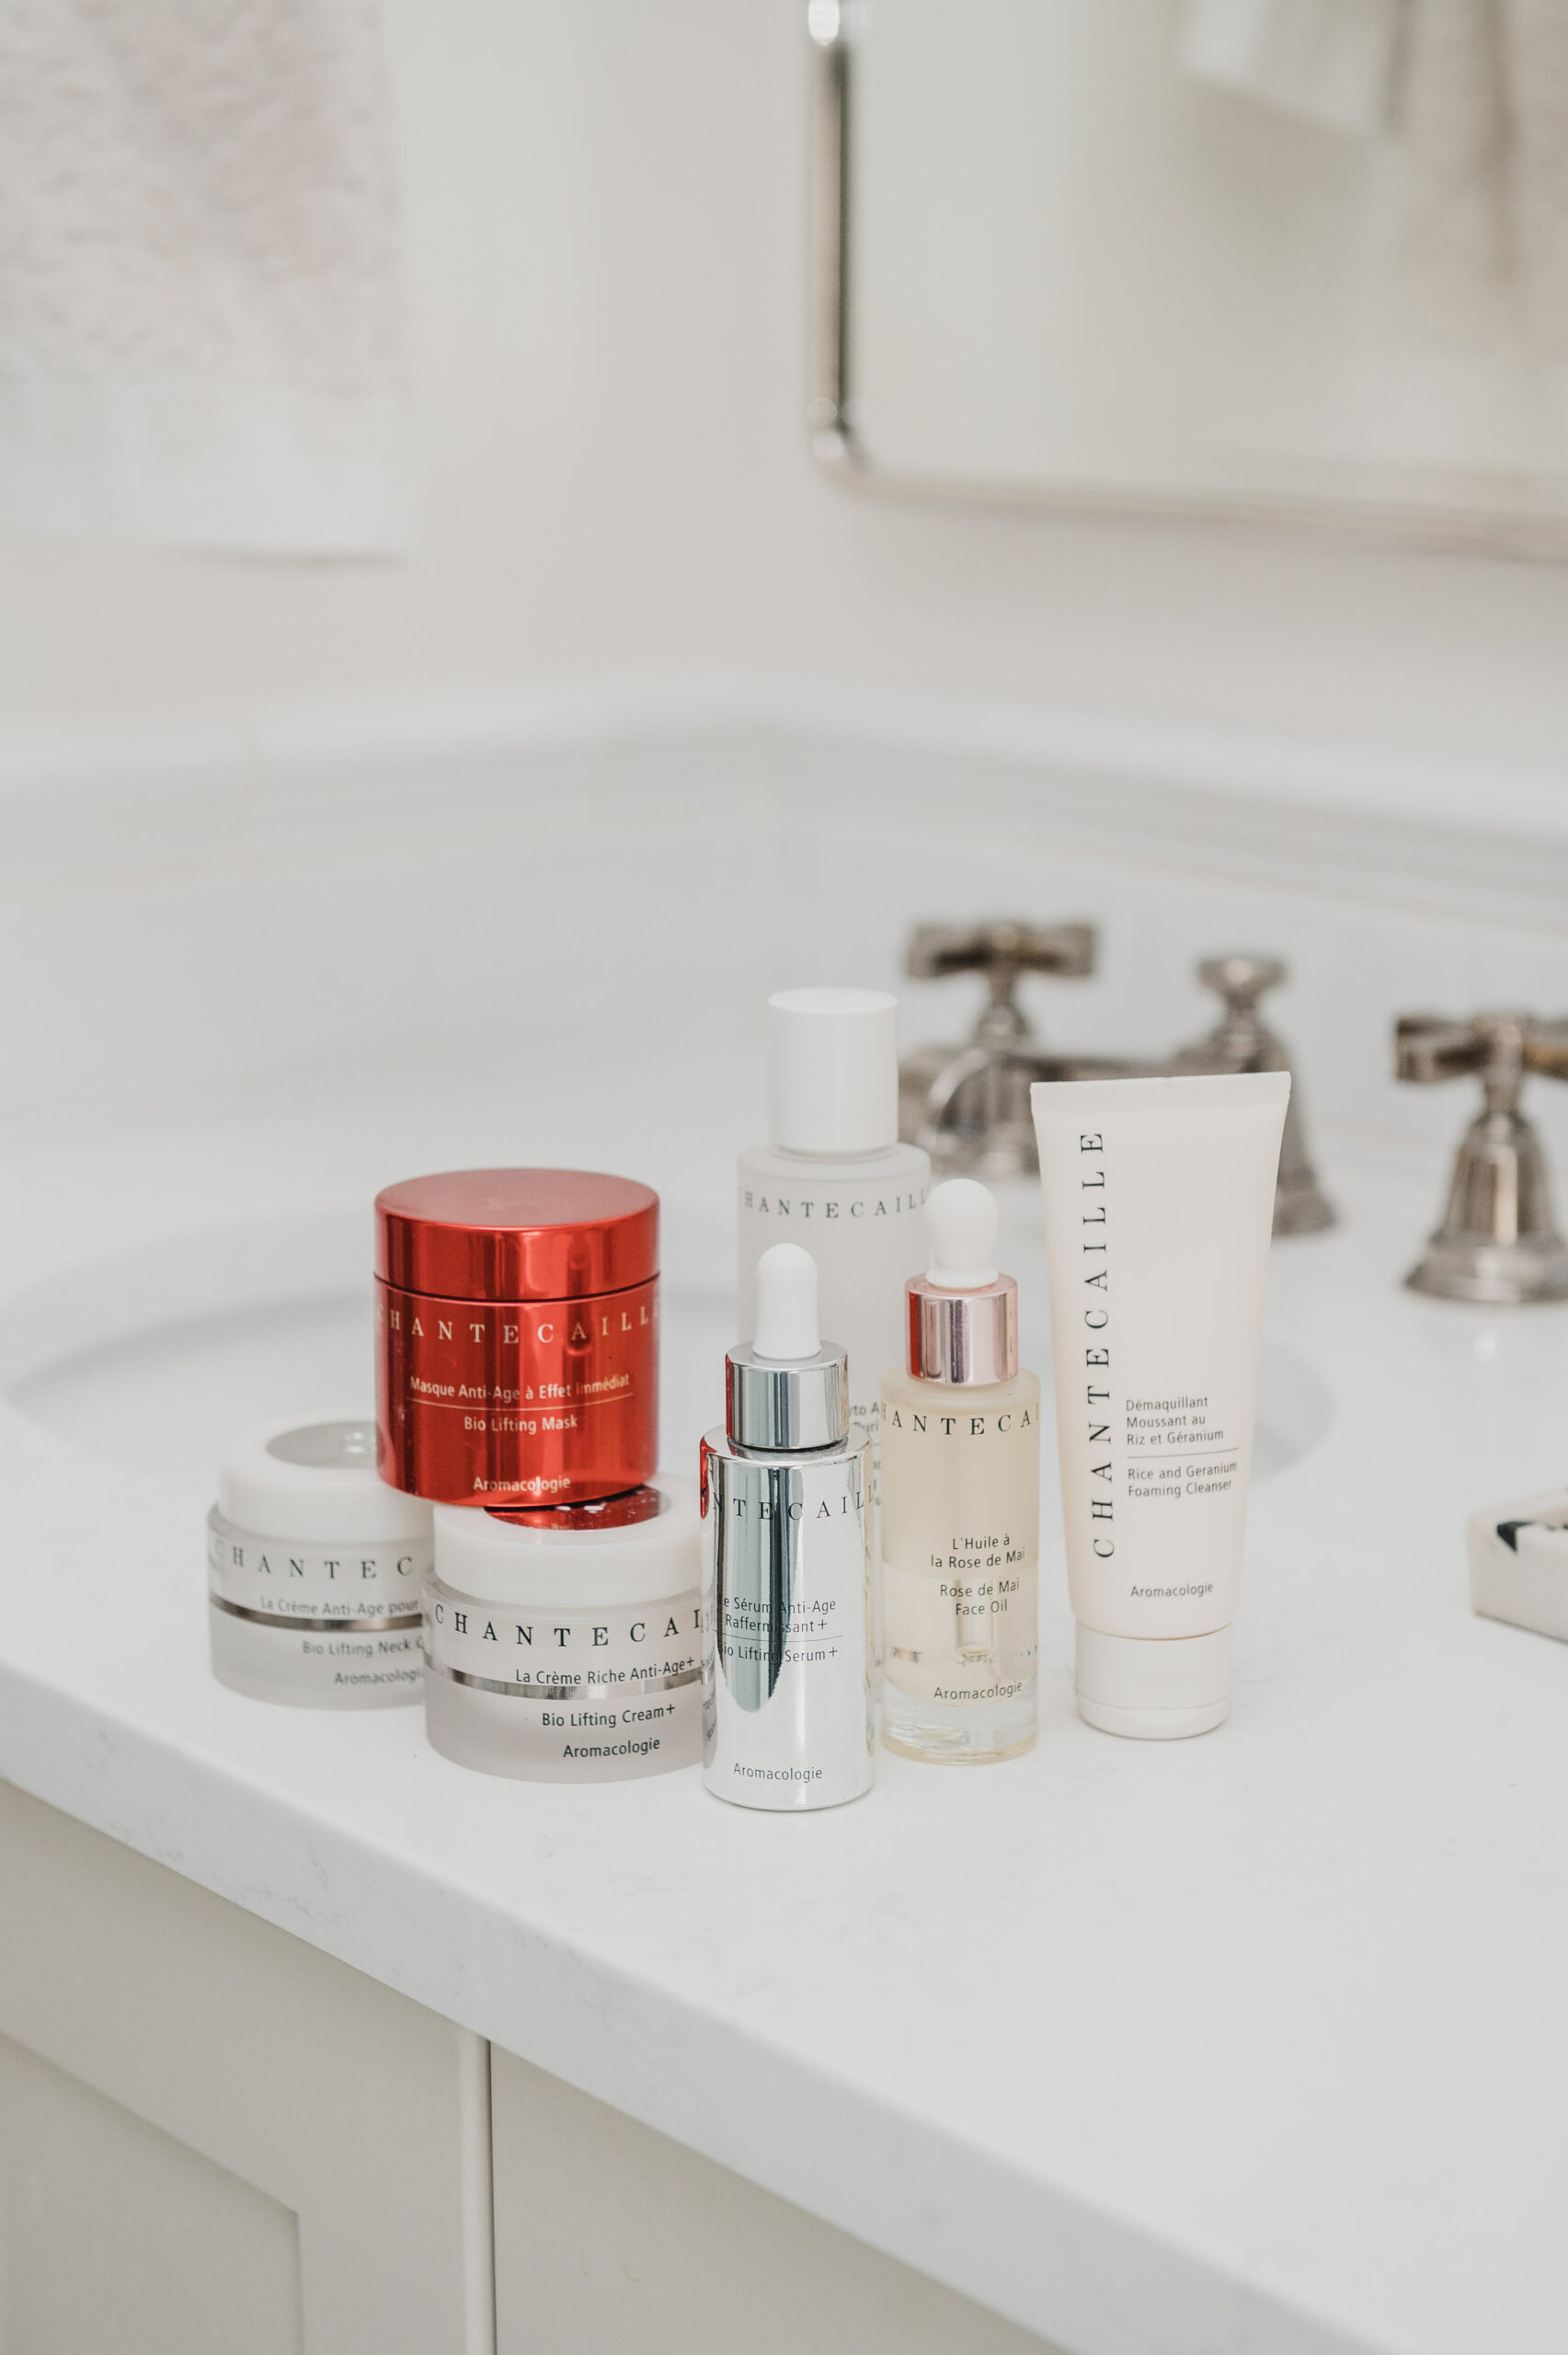 chantecaille skincare review products on the counter